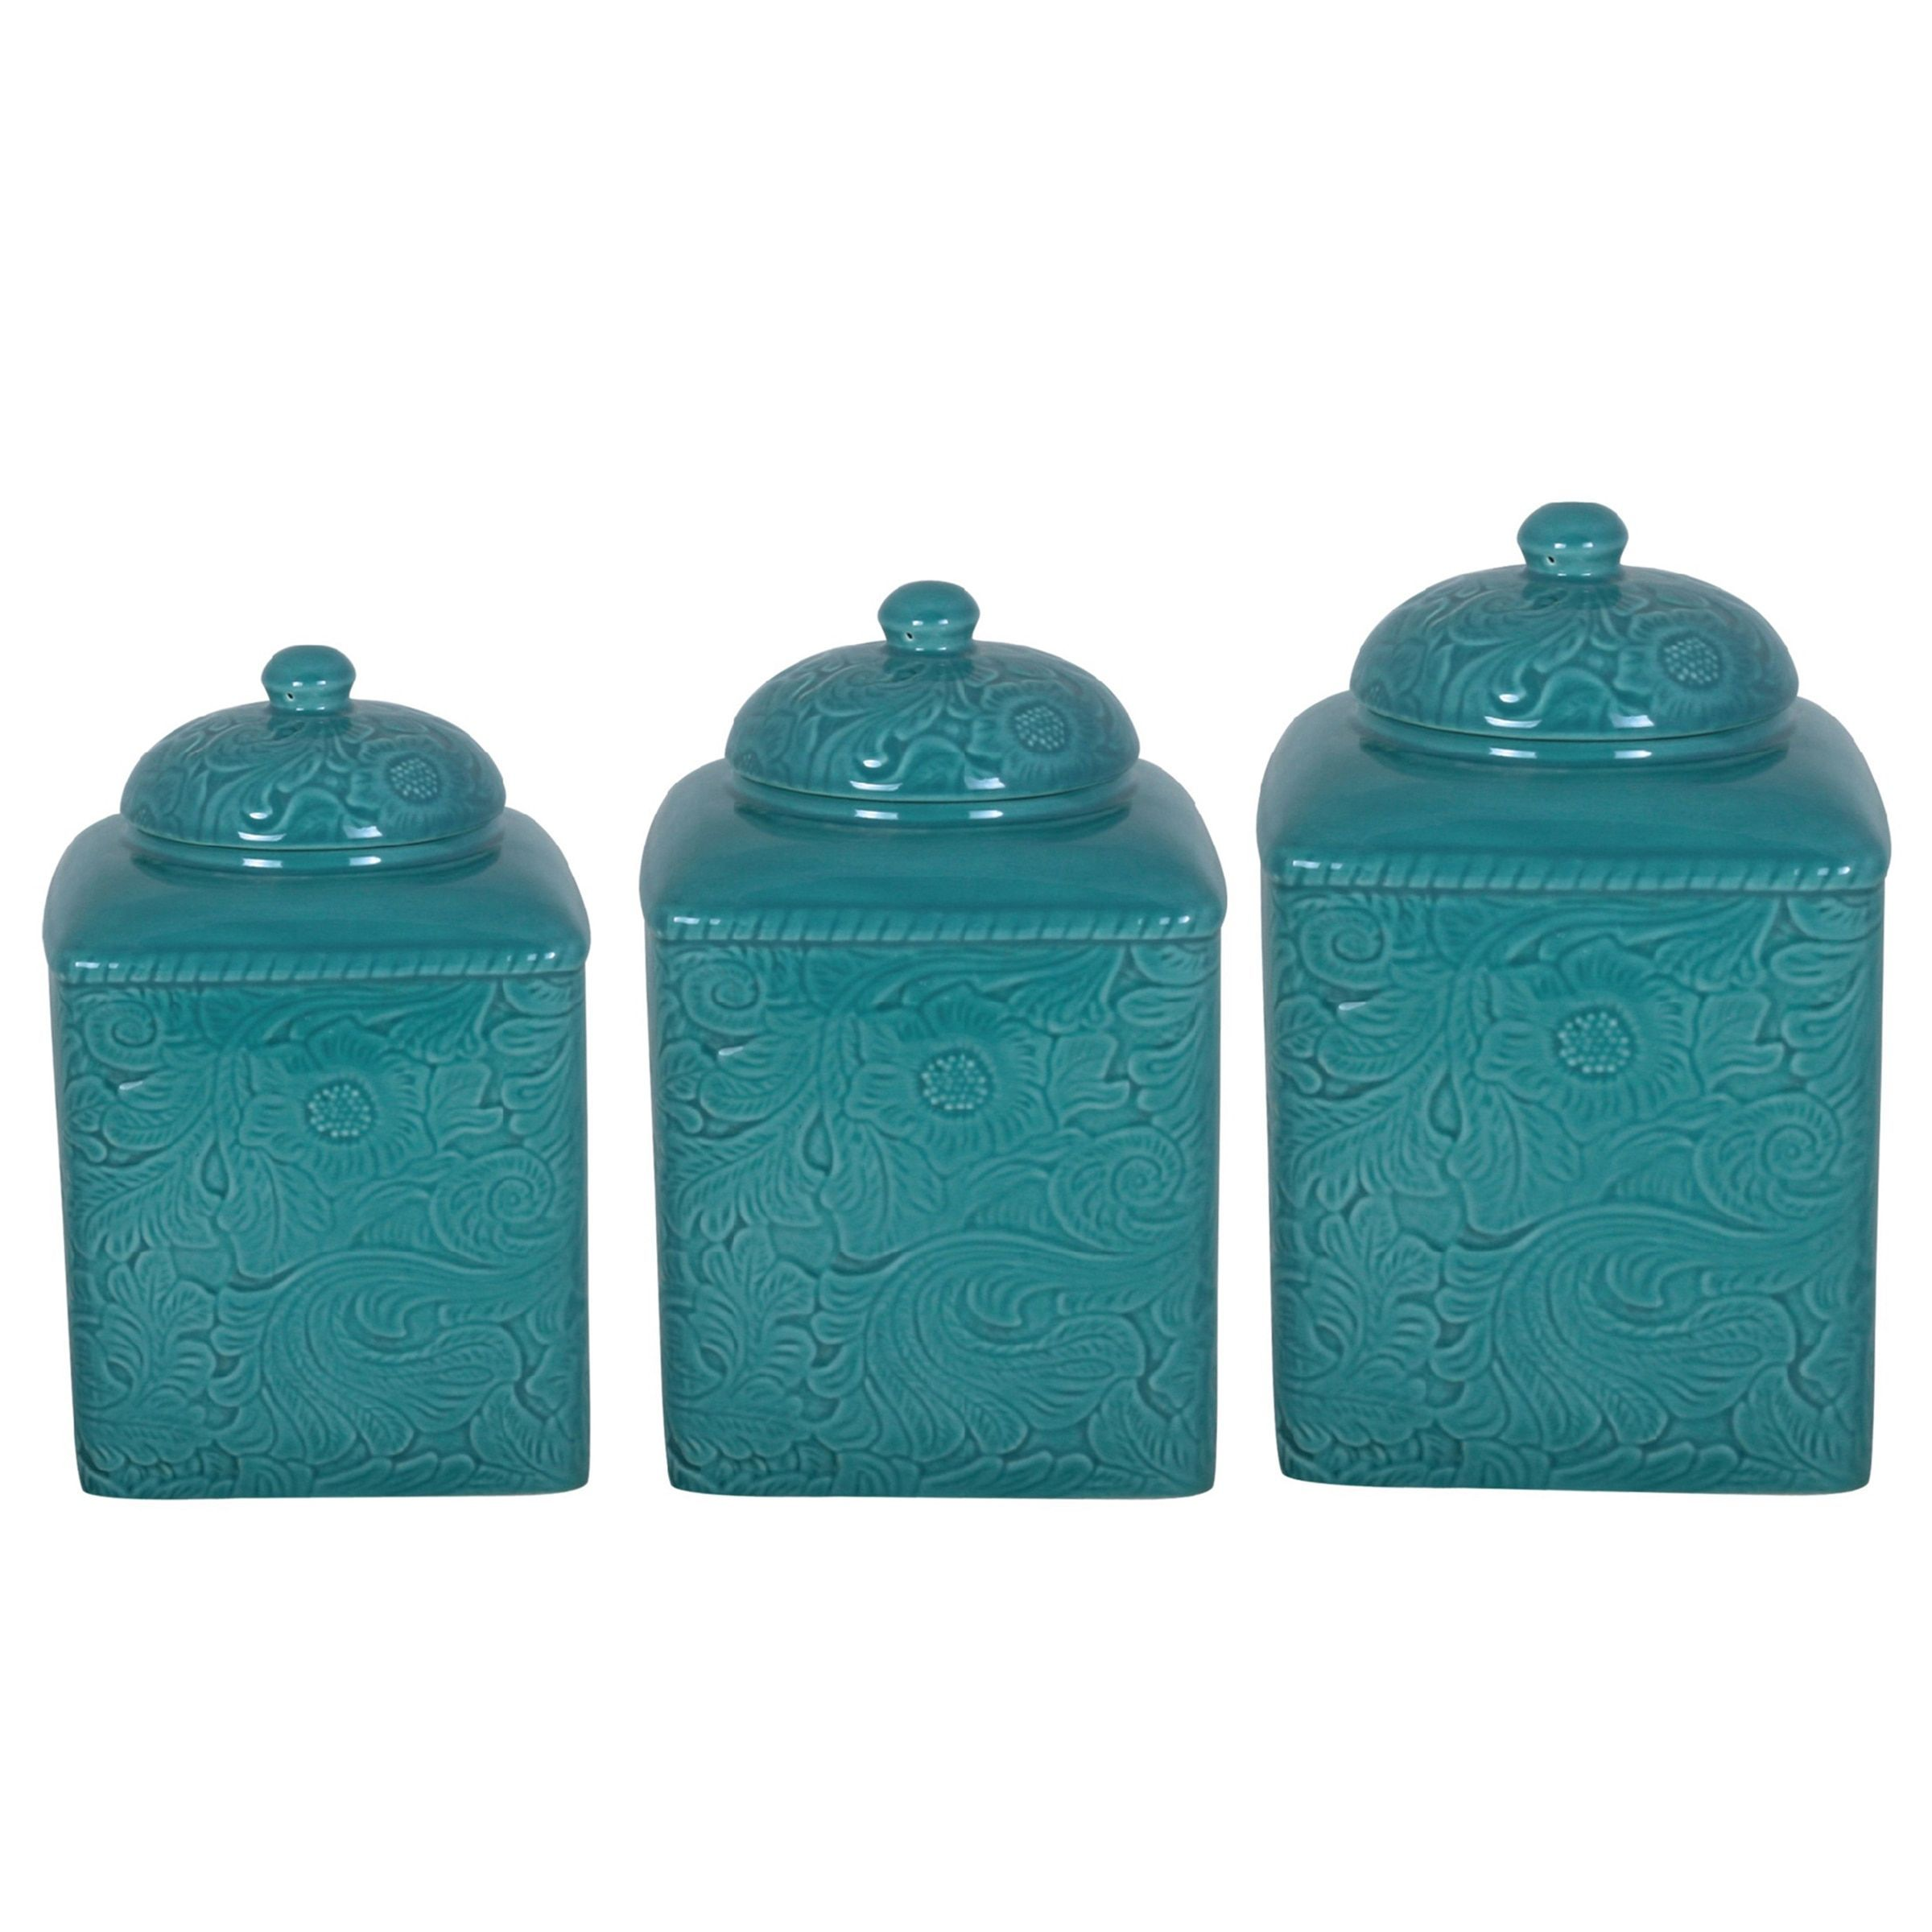 HiEnd Accents Savannah Turquoise Canister 3-piece Set (Turquoise ...